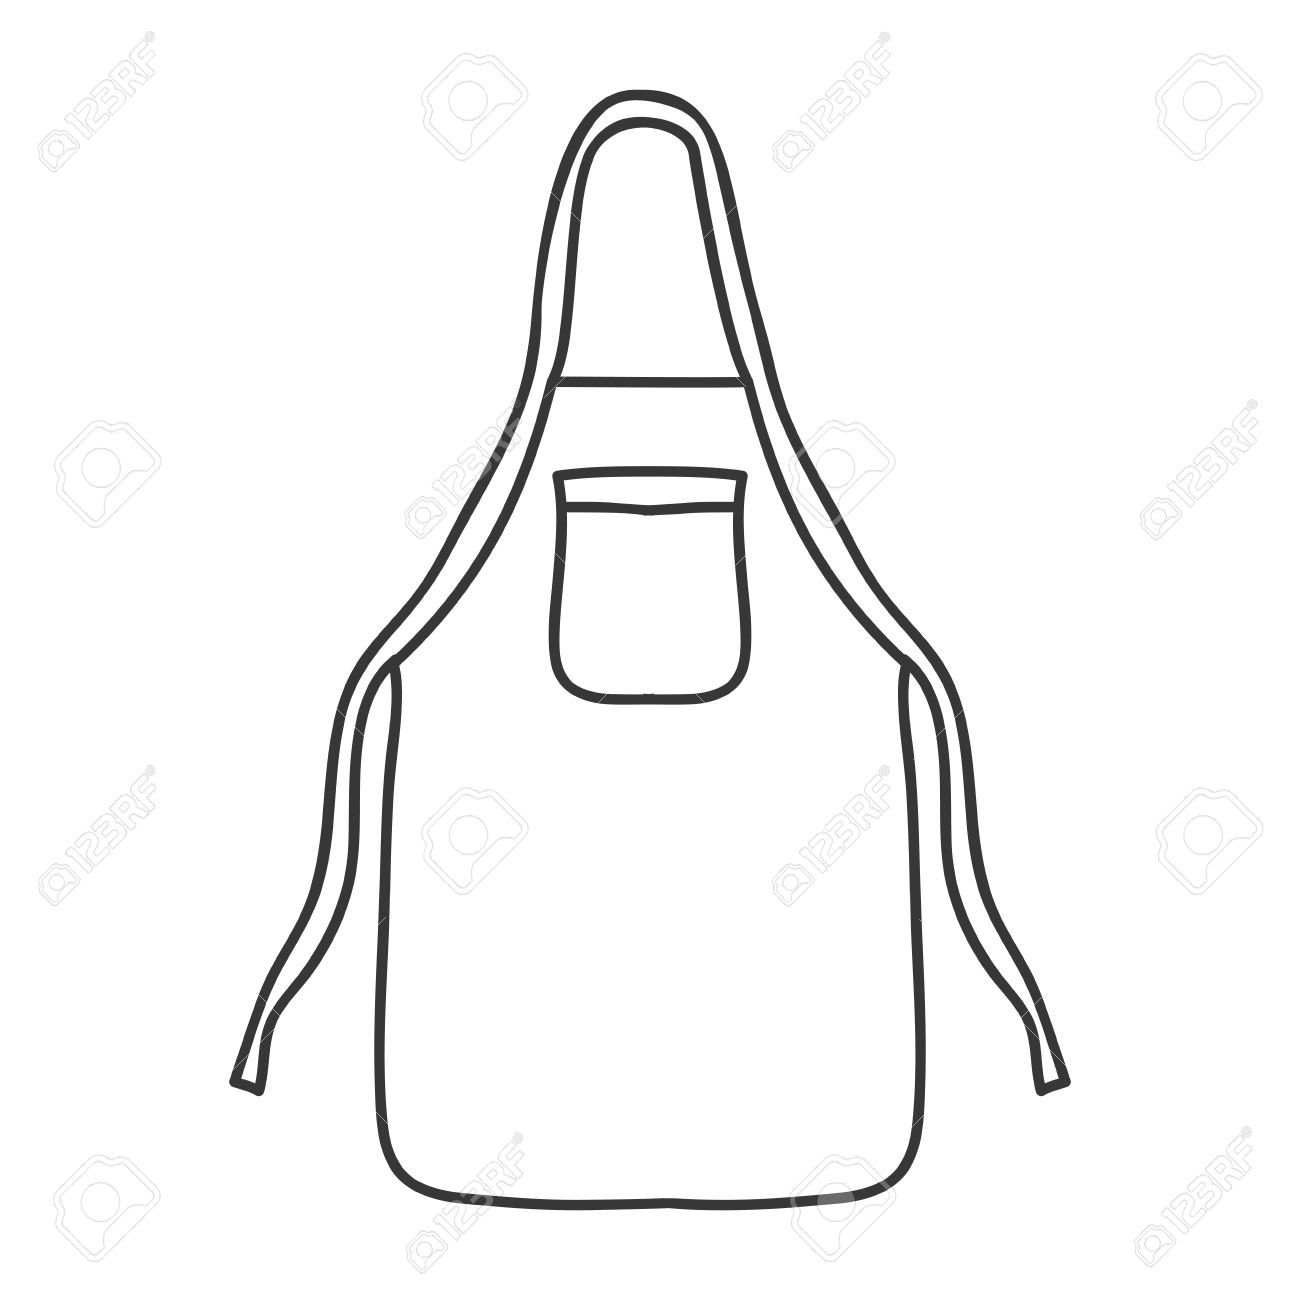 1300x1300 Silhouette Monochrome With Kitchen Apron Vector Illustration